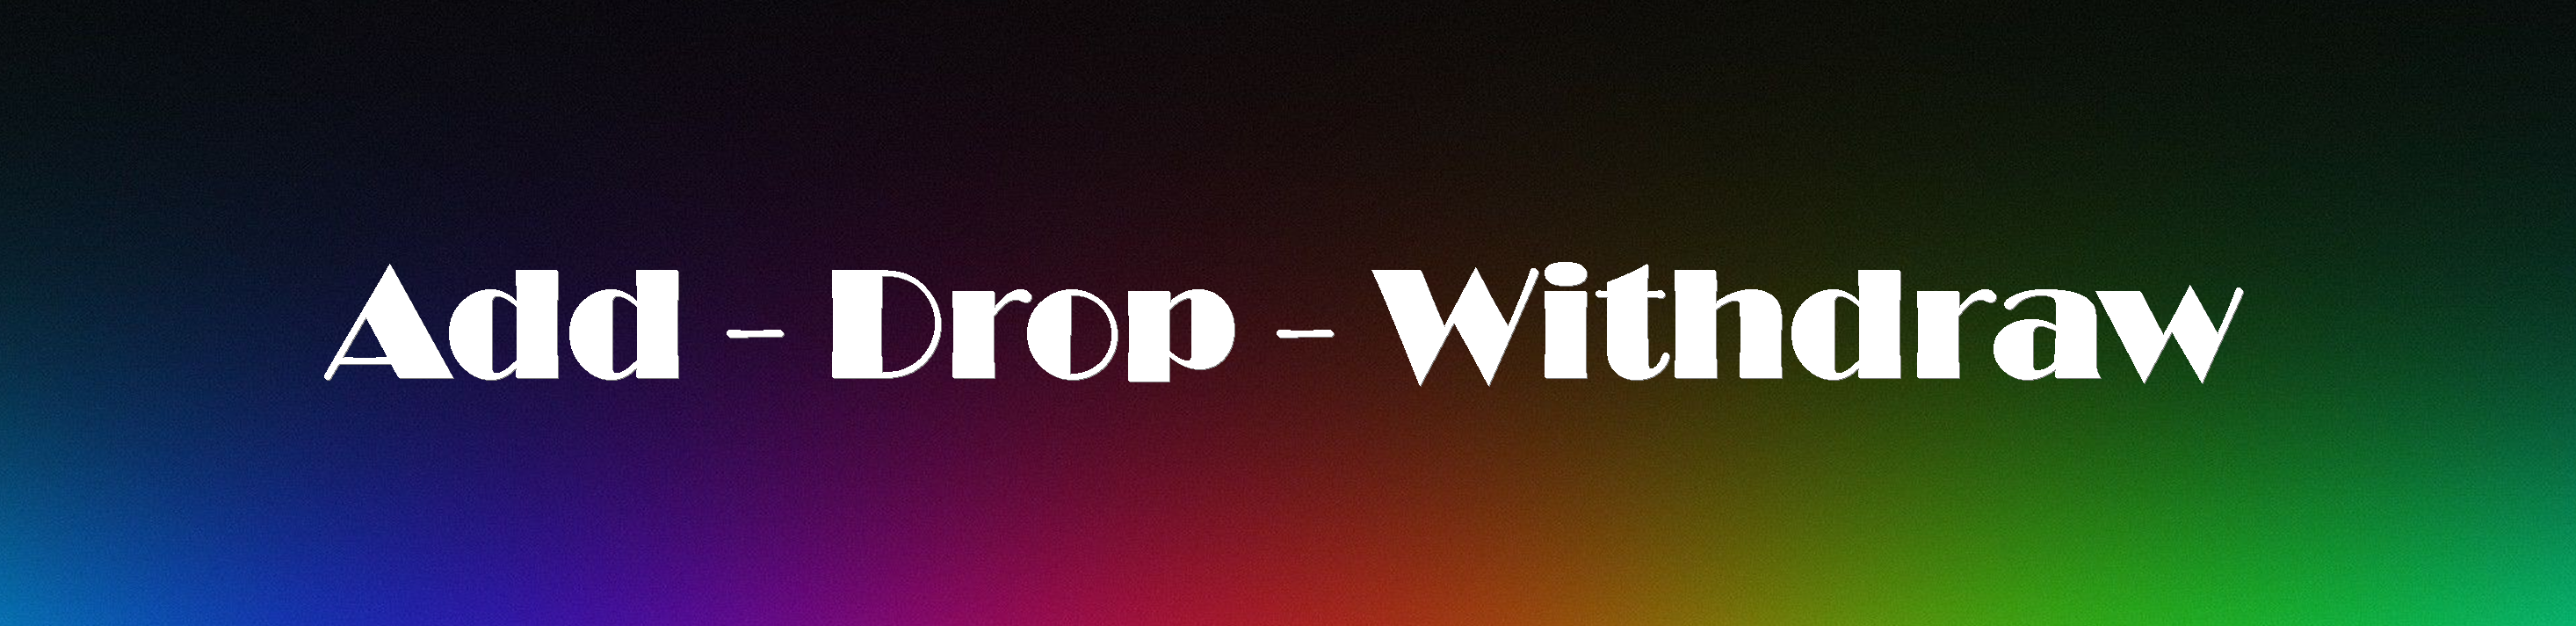 Add - Drop - Withdraw